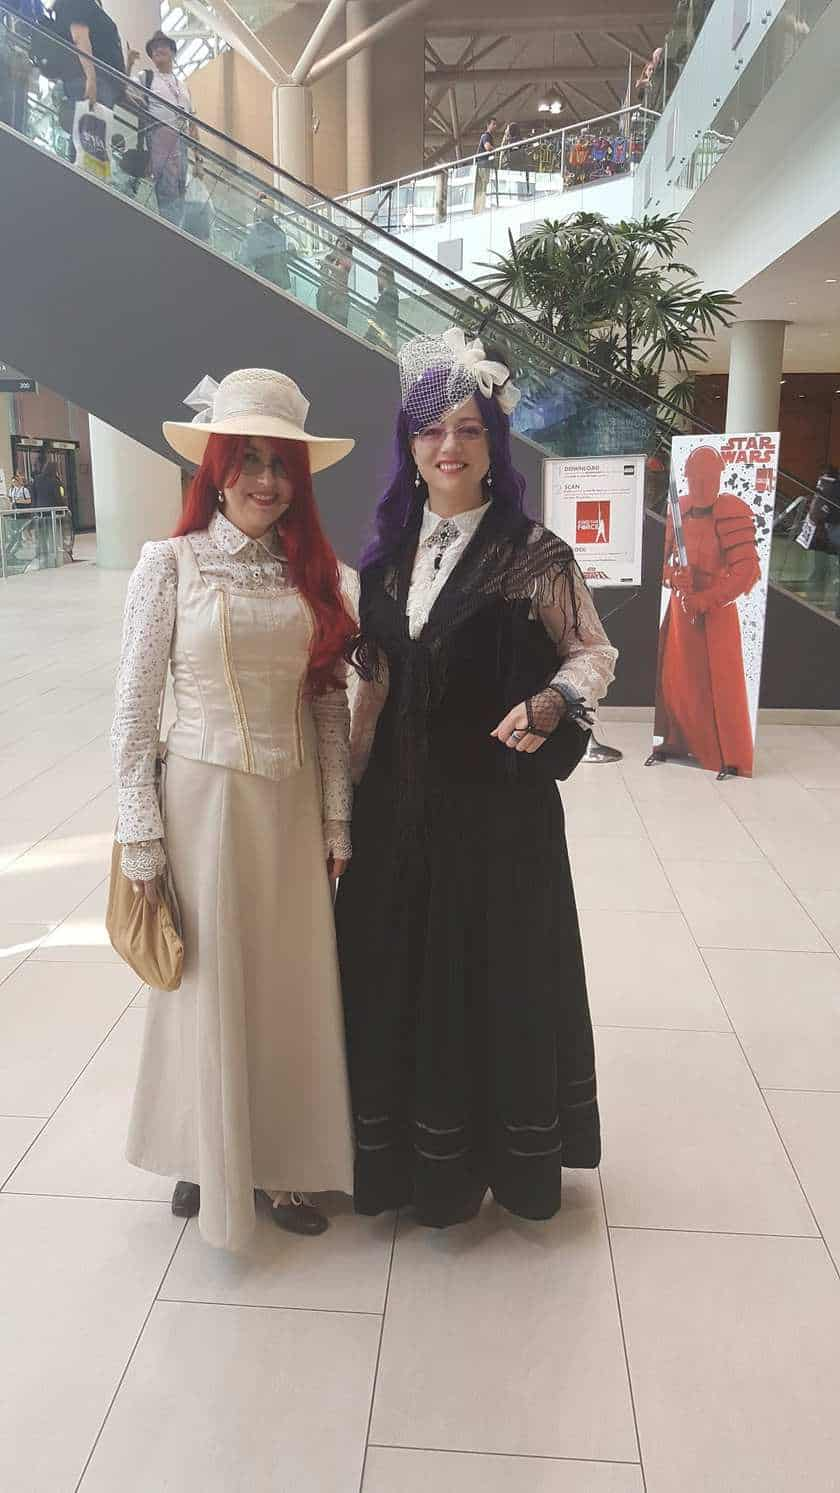 Megan Wynters & Irys Godeleva Cosplay - Star Wars augmented reality - Toronto Fan Expo Canada 2017